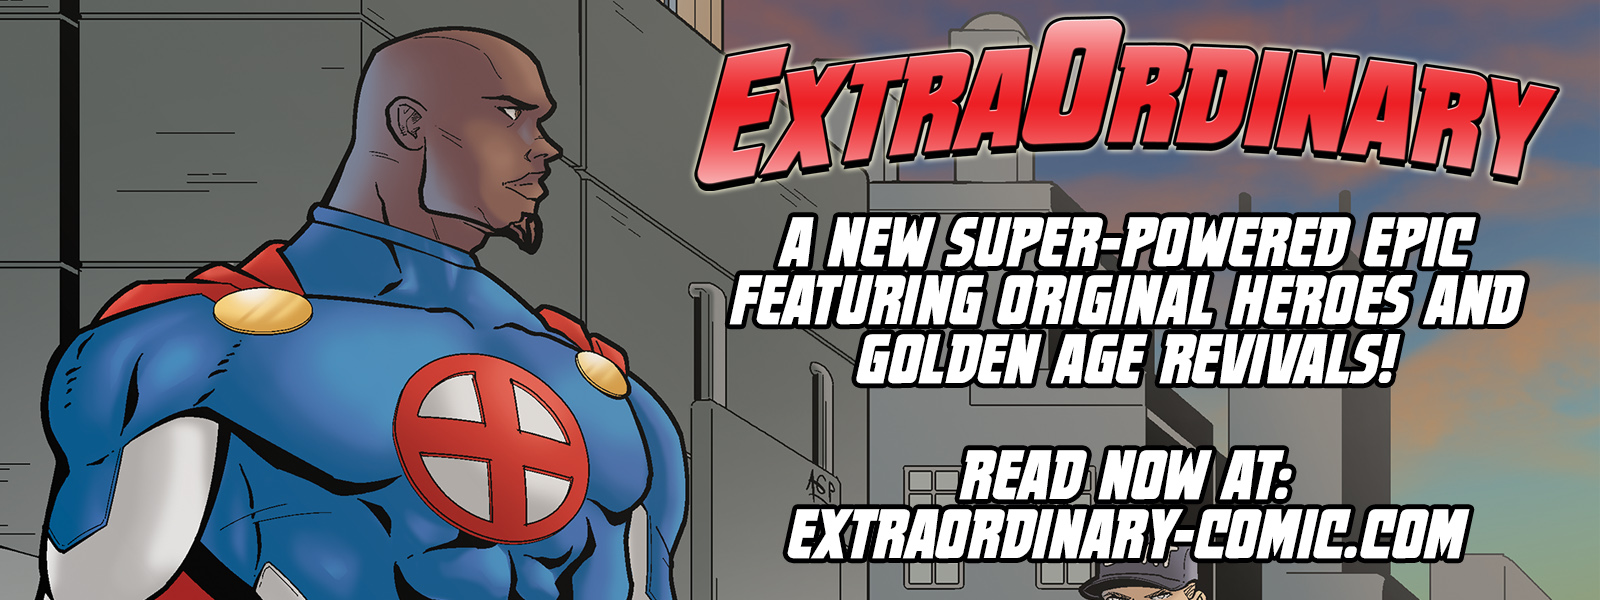 ExtraOrdinary #2 begins!